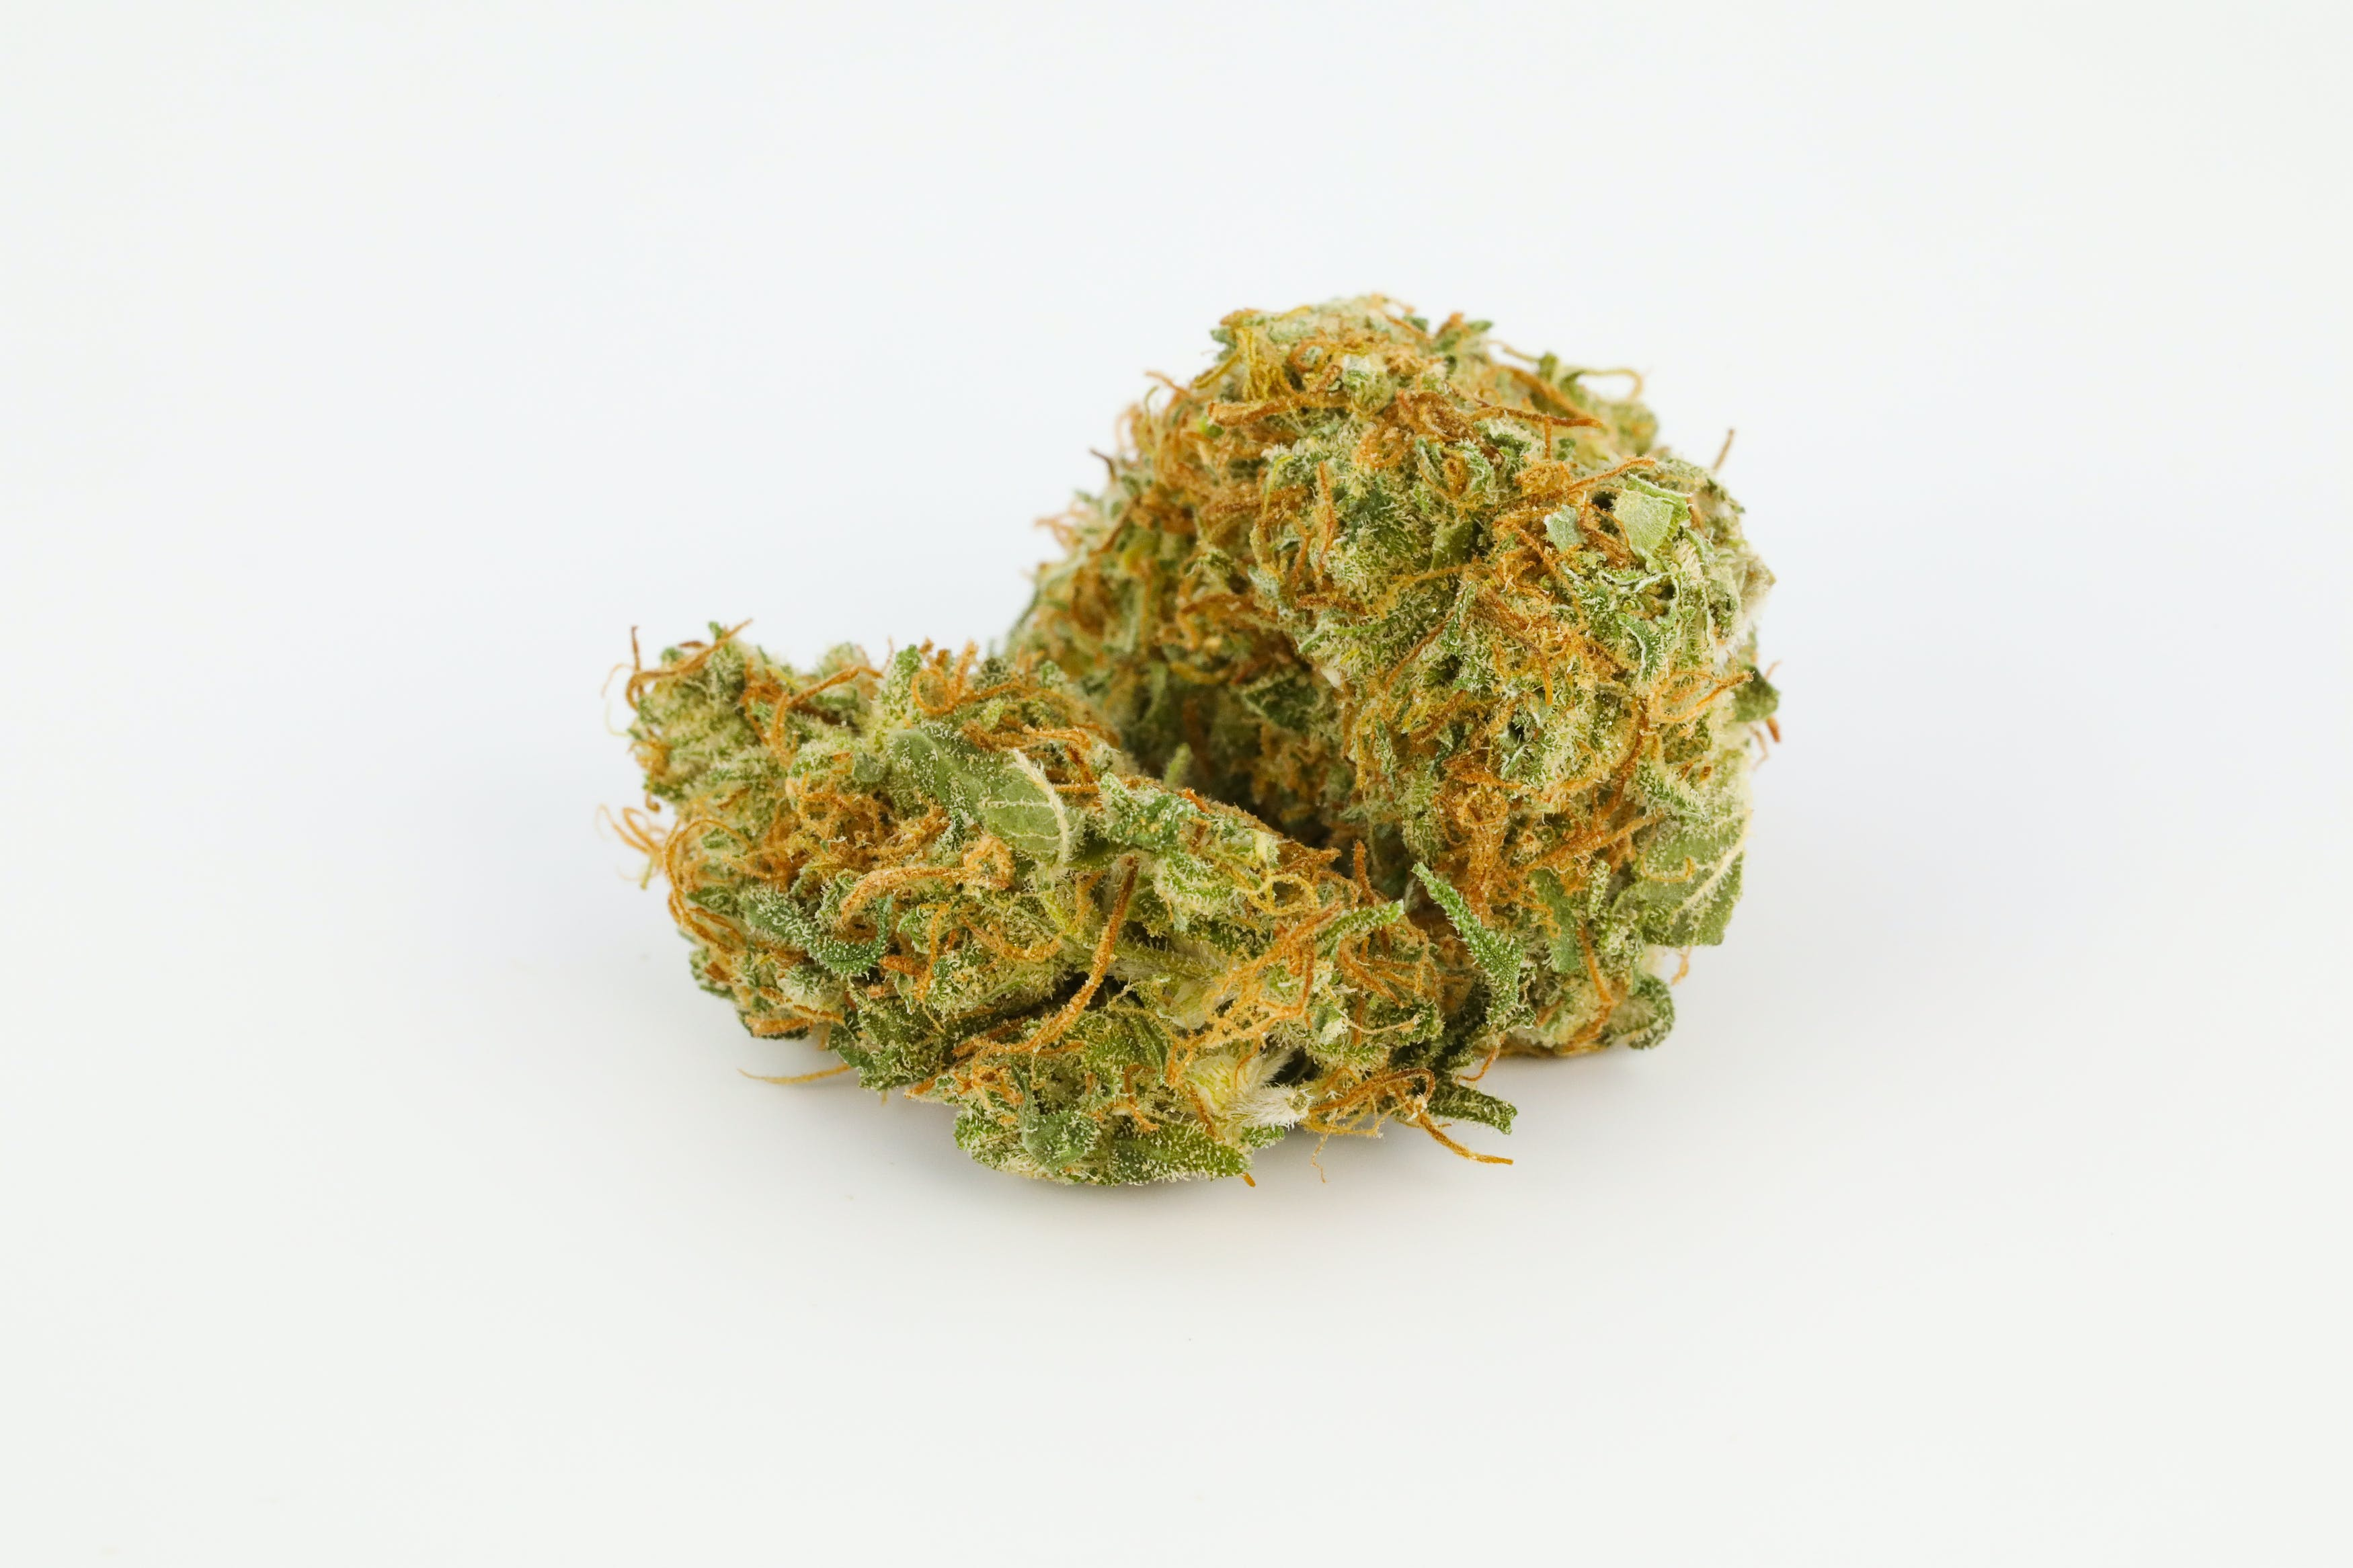 Sugar Cookie Weed; Sugar Cookie Cannabis Strain; Sugar Cookie Hybrid Marijuana Strain